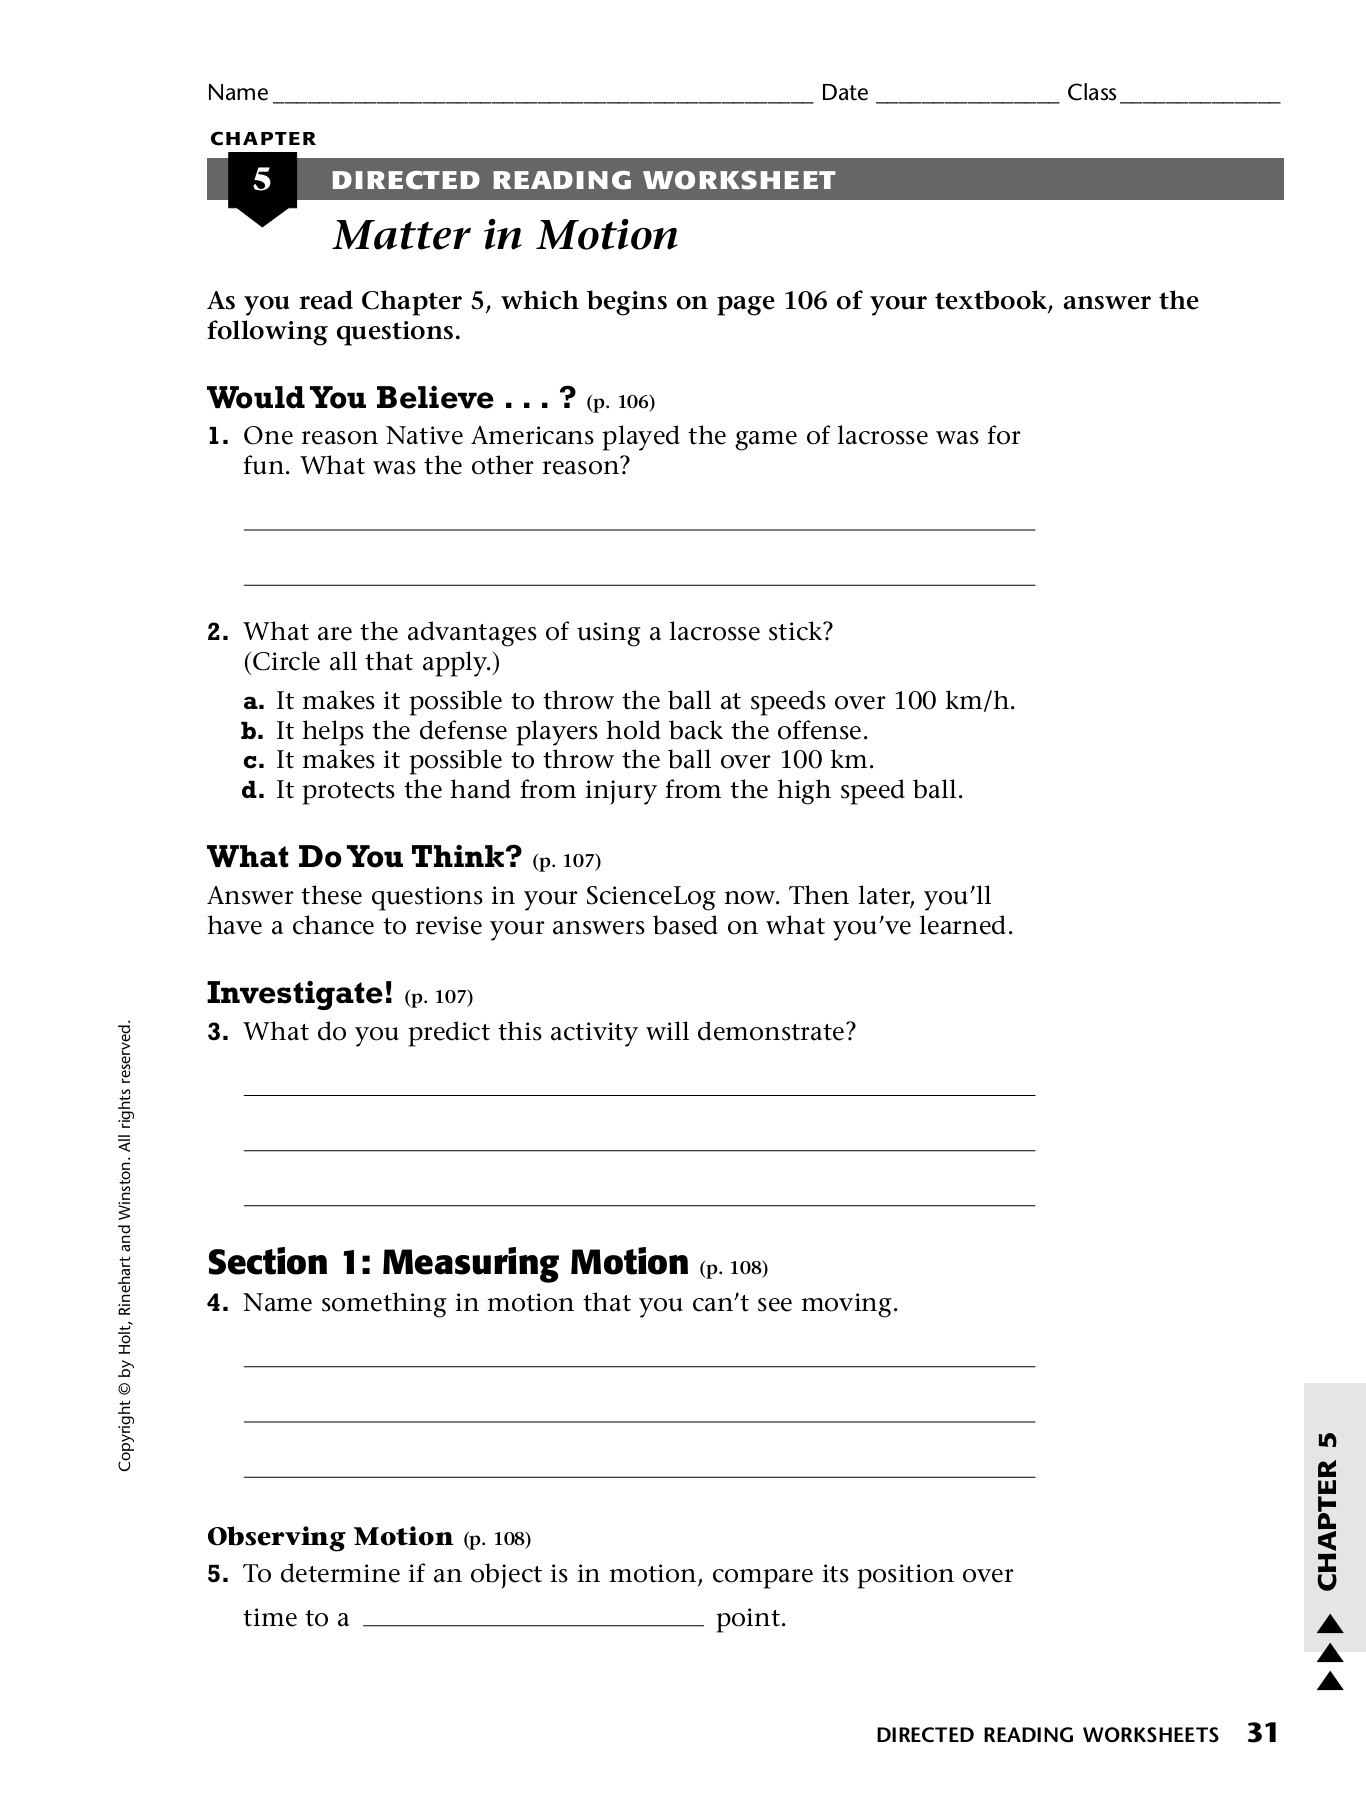 Chapter 5 Directed Reading Worksheet Matter In Motion